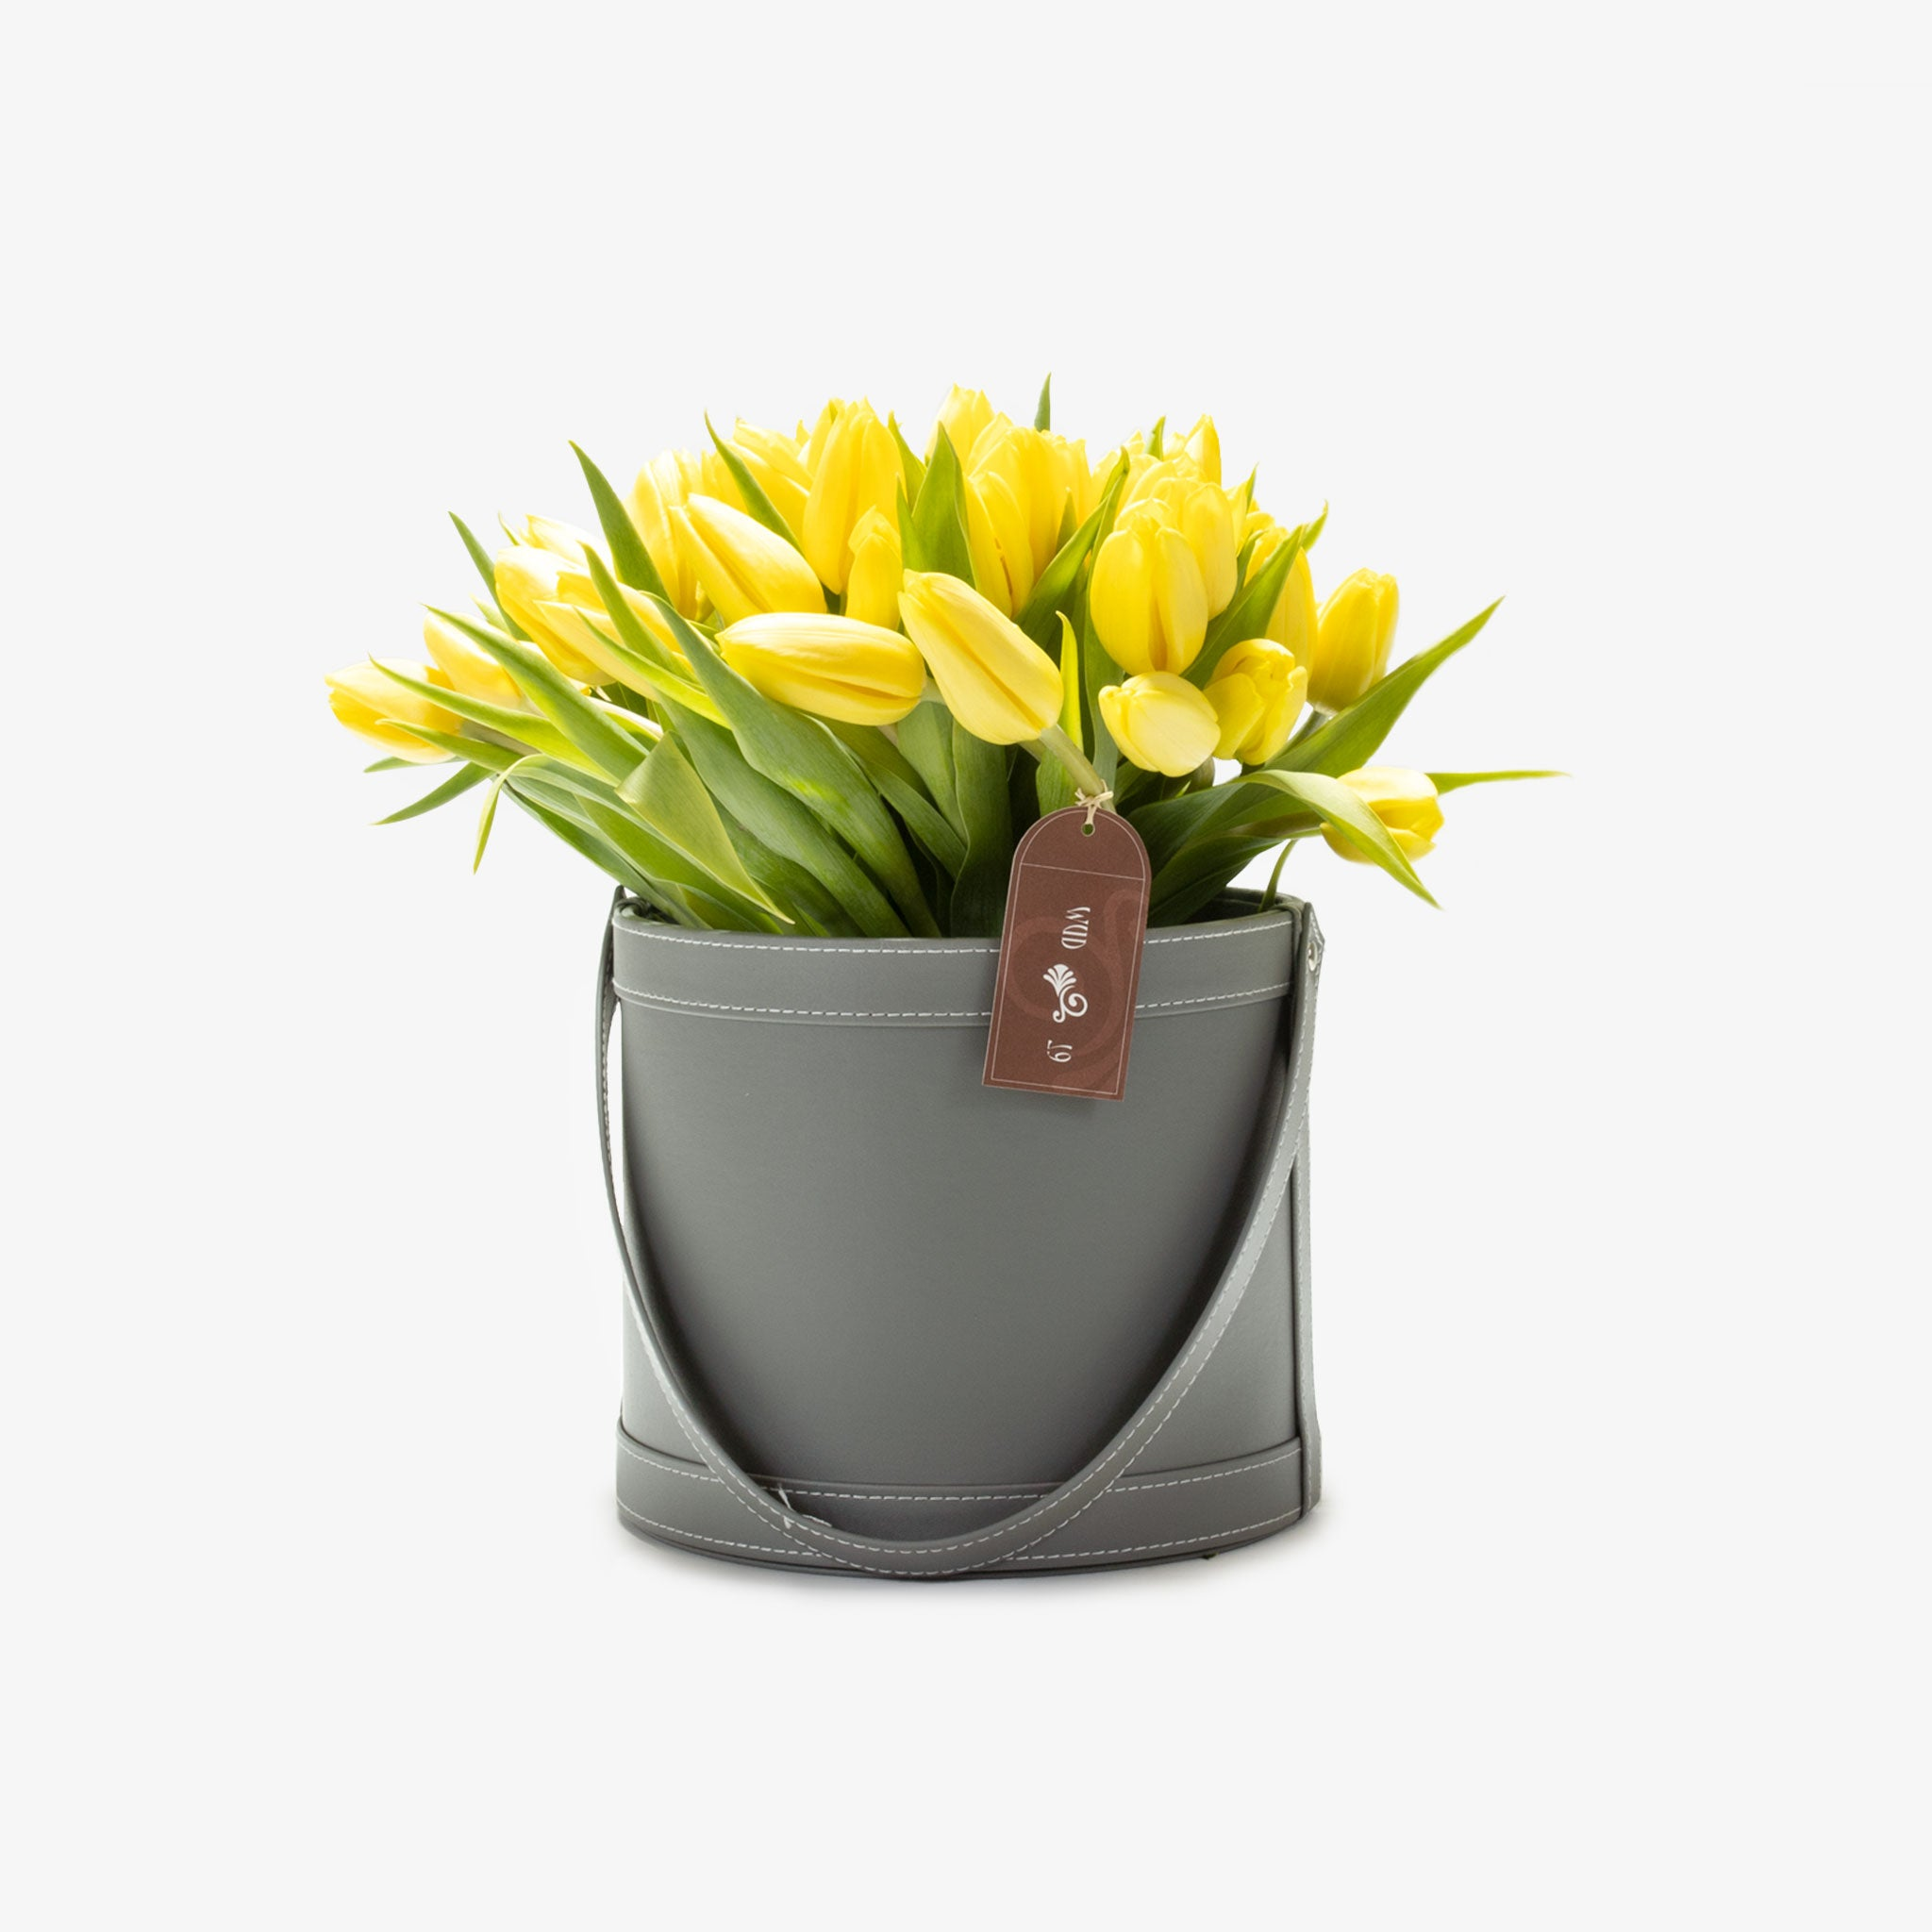 Yellow Tulips - Wudflowers